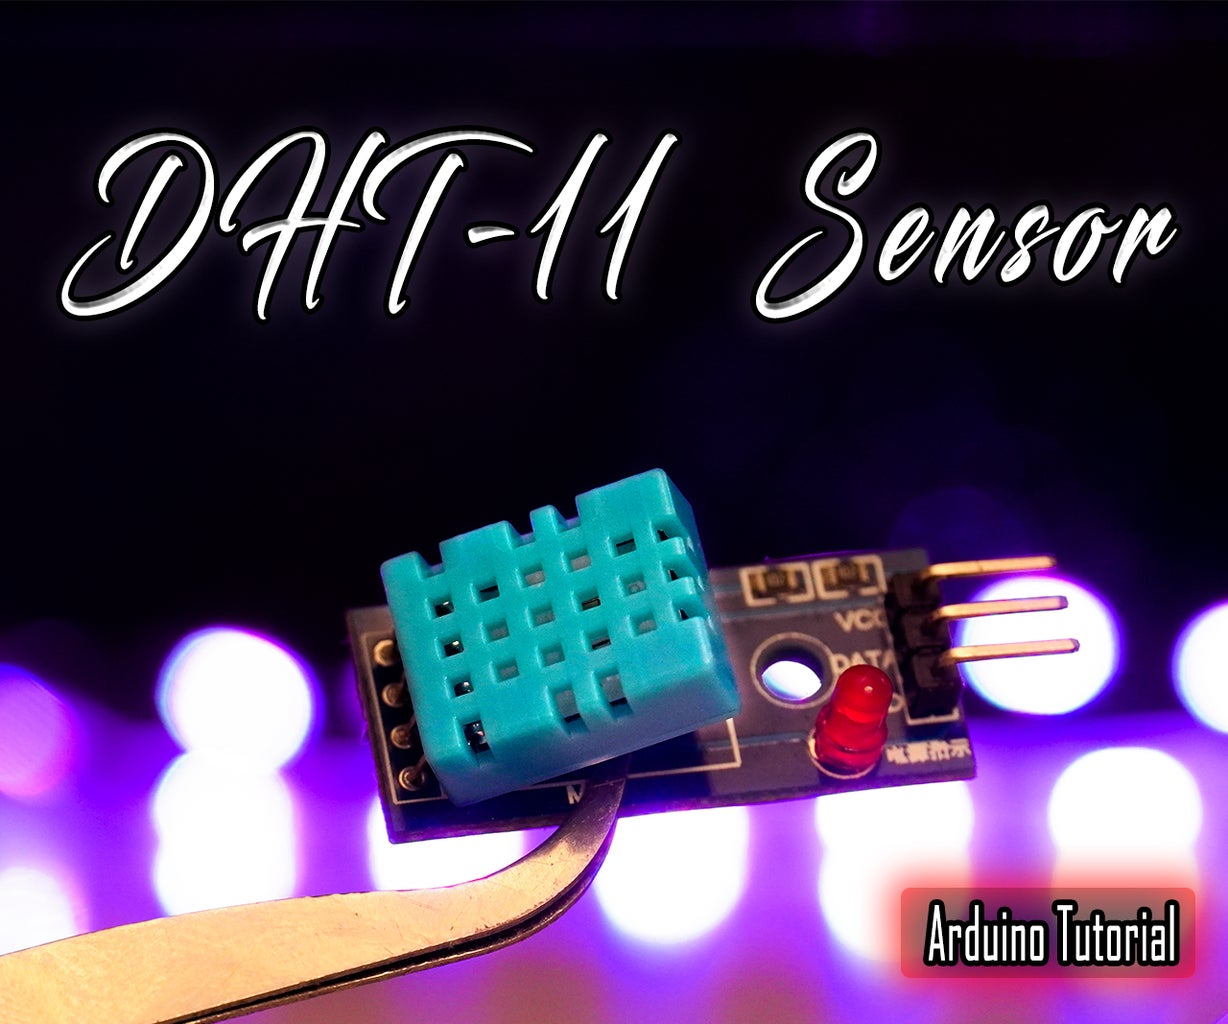 How to Interface DHT 11 Temperature and Humidity Sensor With Arduino